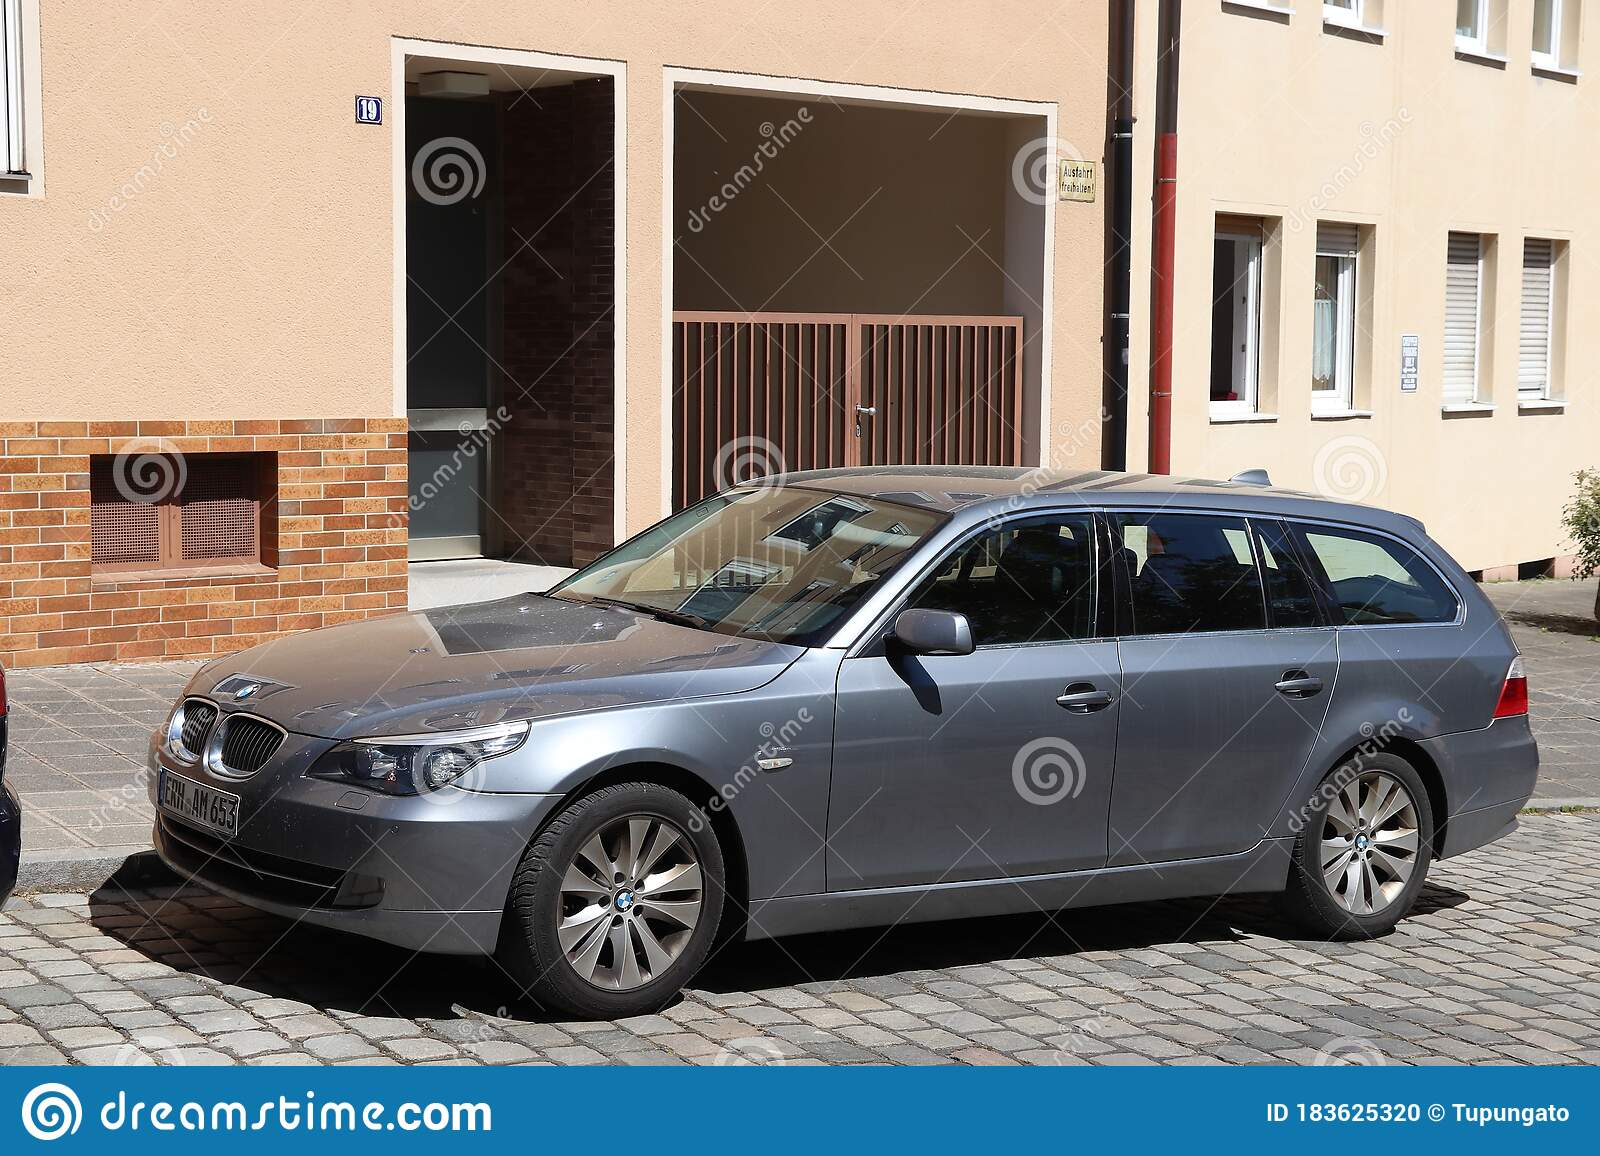 Bmw Family Car Editorial Image Image Of Germany Transportation 183625320